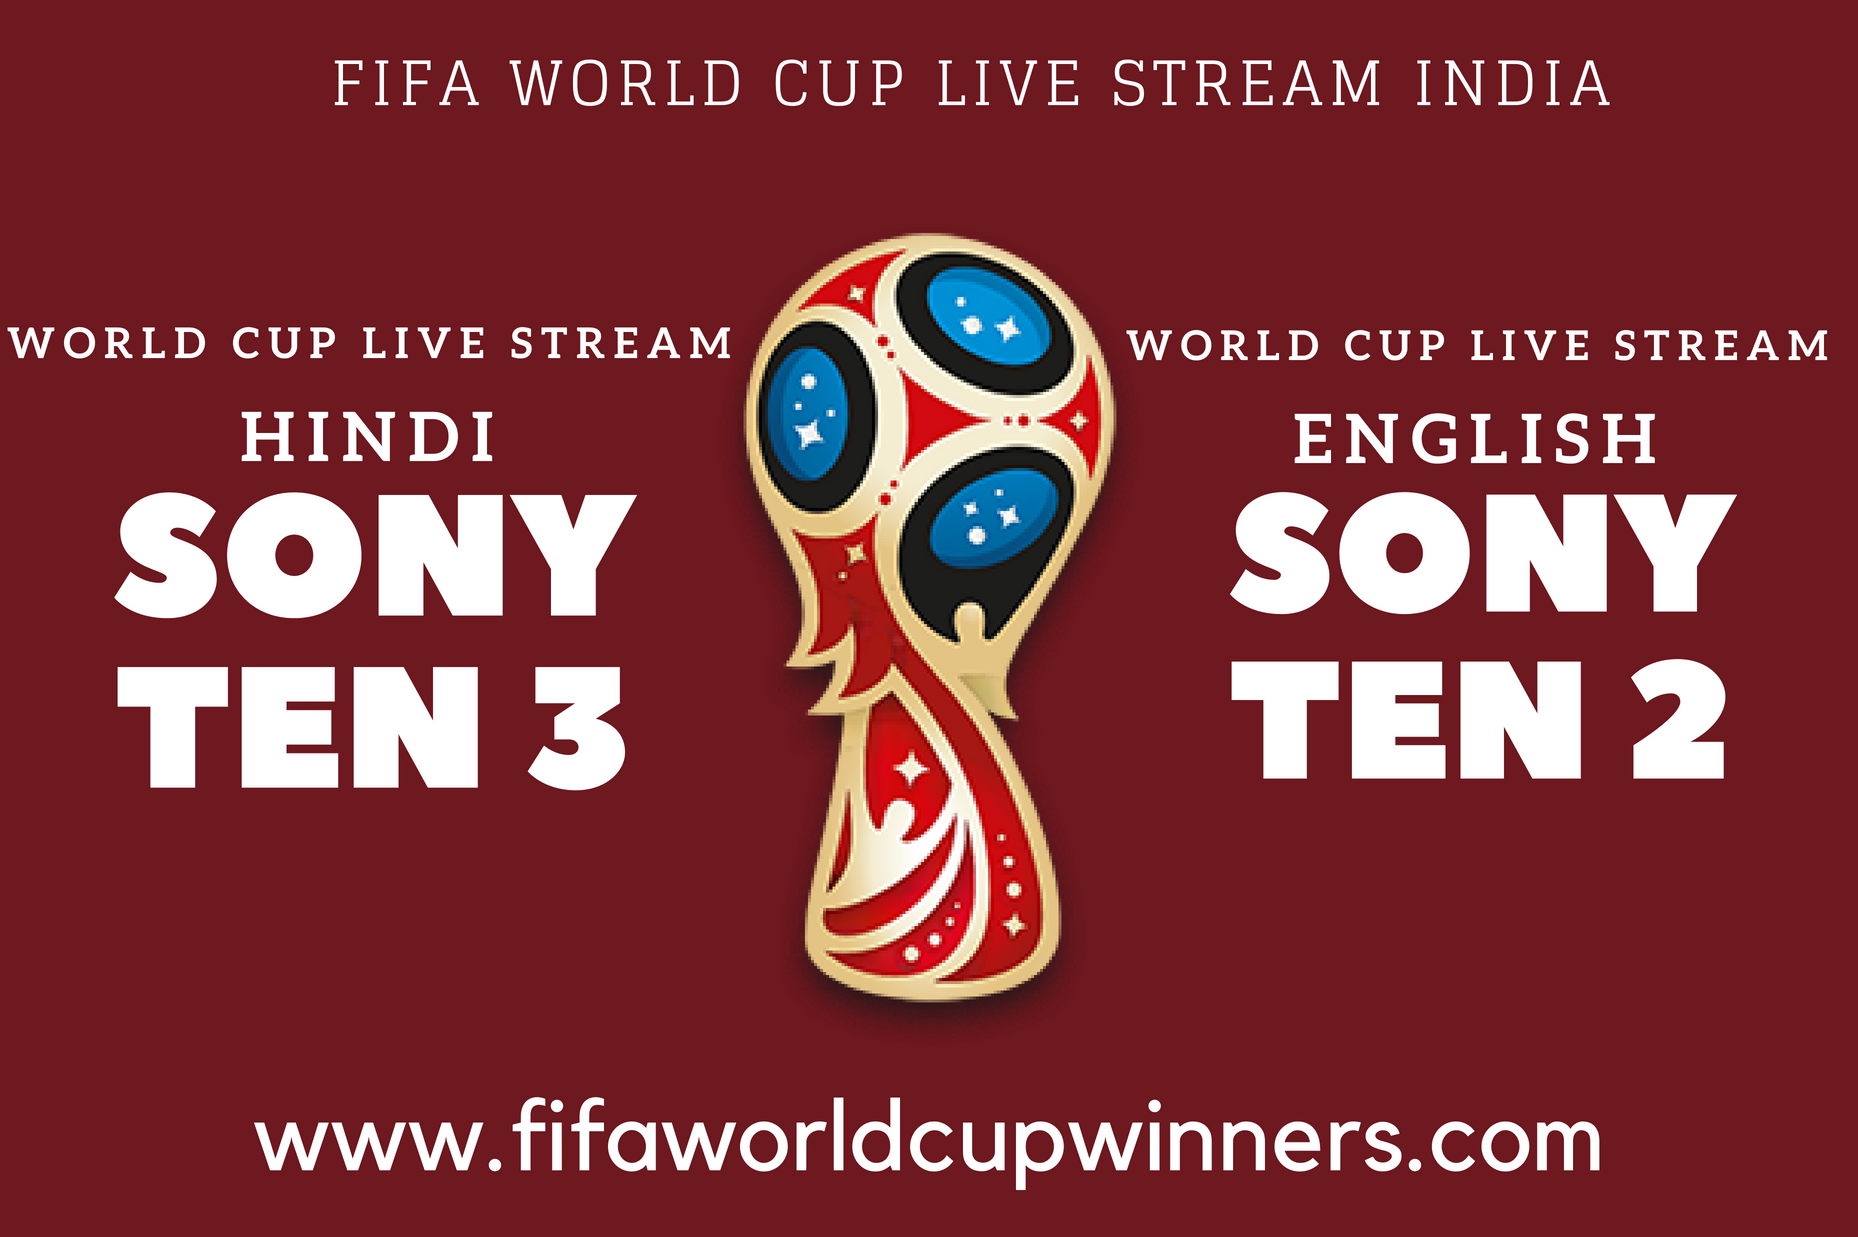 Fifa World Cup Match Live Stream From India You Can Watch 2018 World Cup Free Live Telecasting On Your Mobile Without Any Buffering World Cup Live World Cup Match World Cup Winners